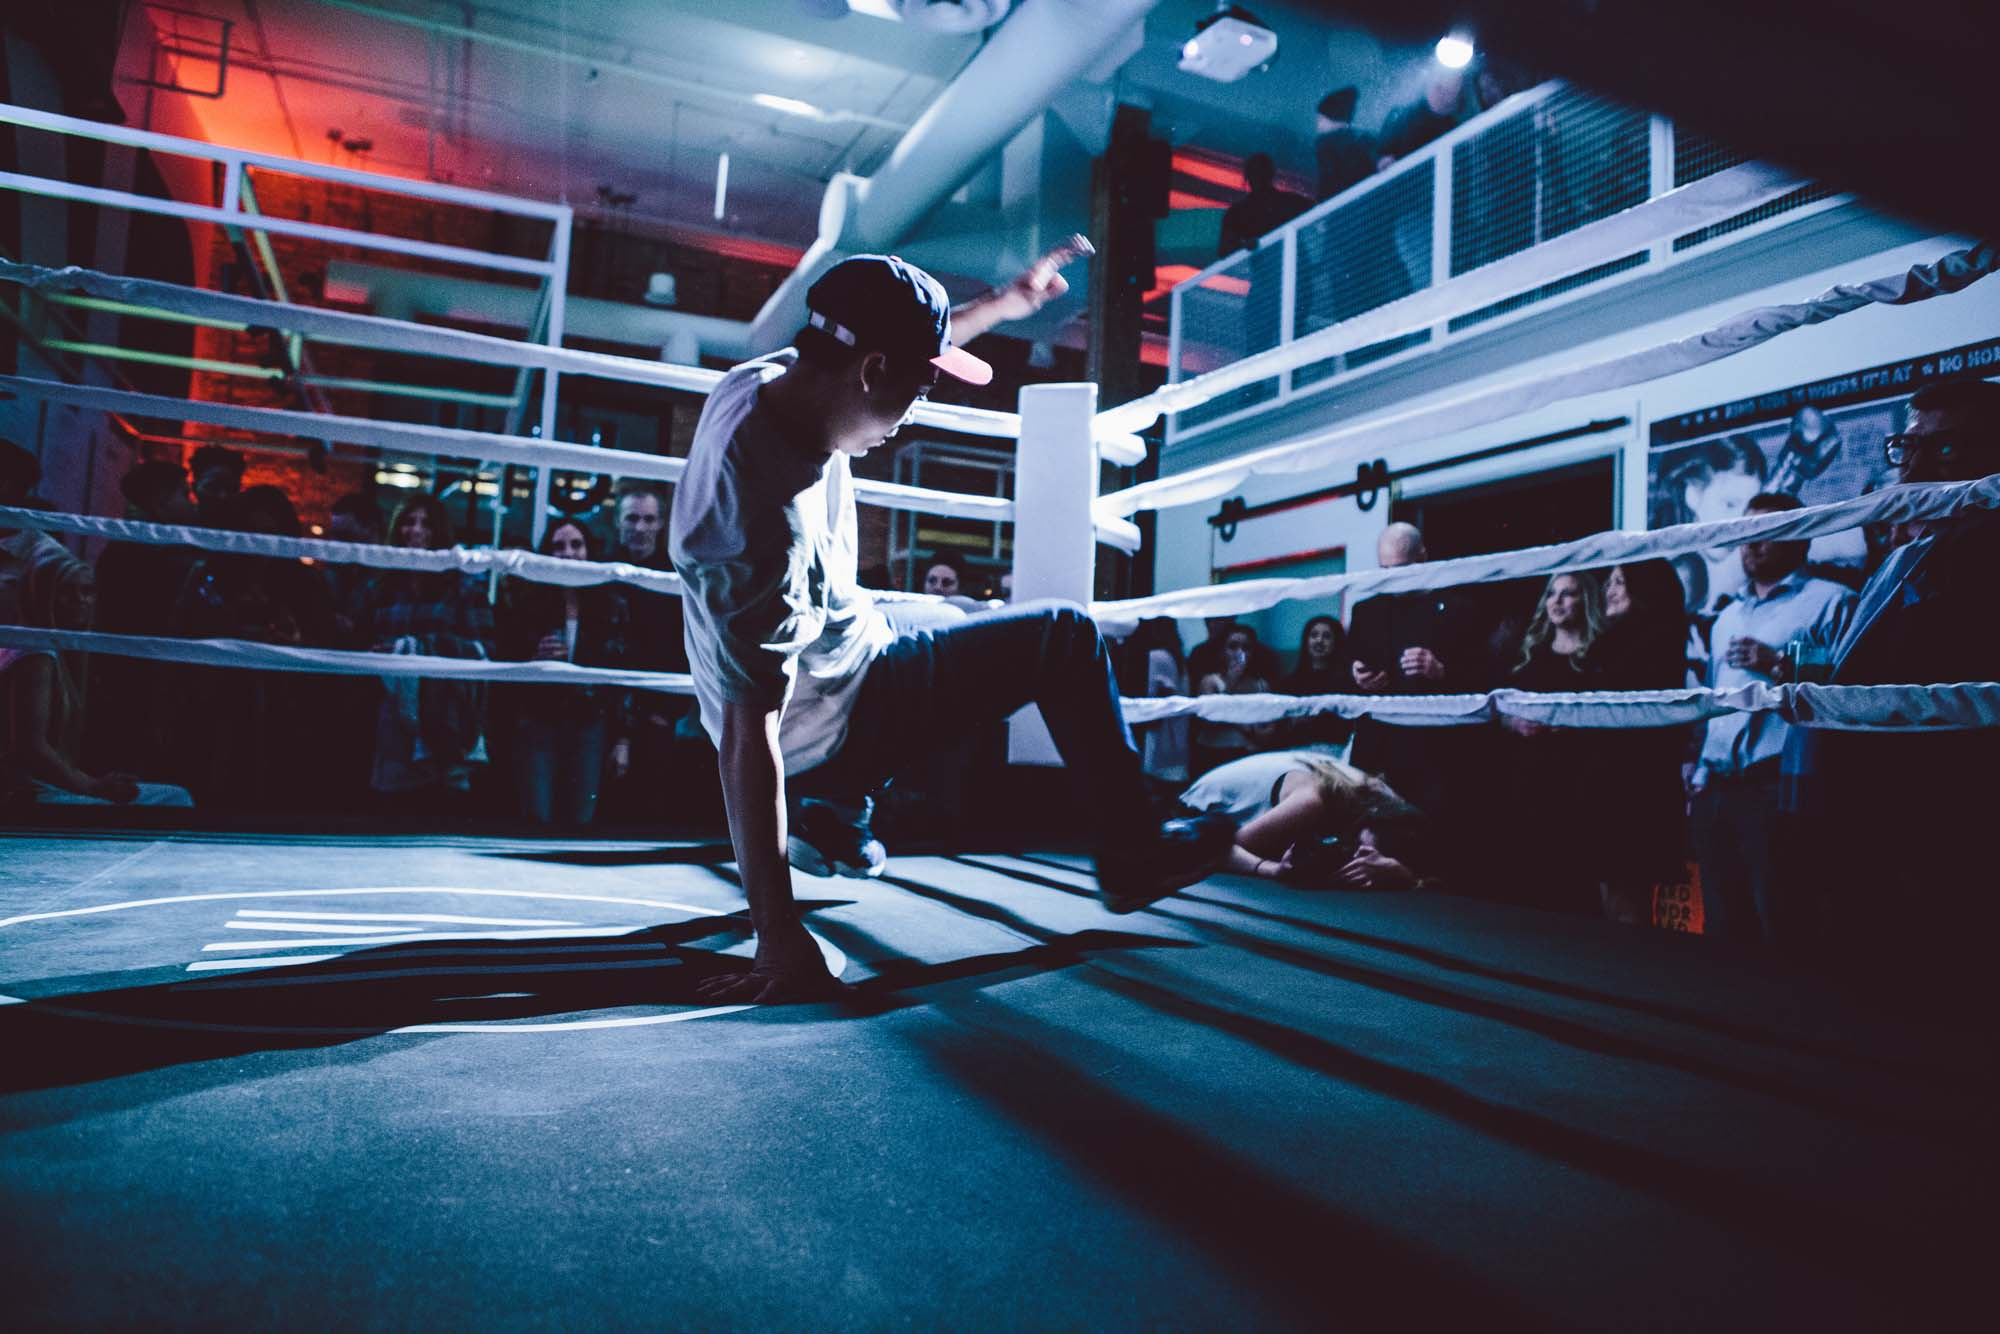 undrcard_boxing_studio_calgary_grand_opening_party20170121_0063.jpg